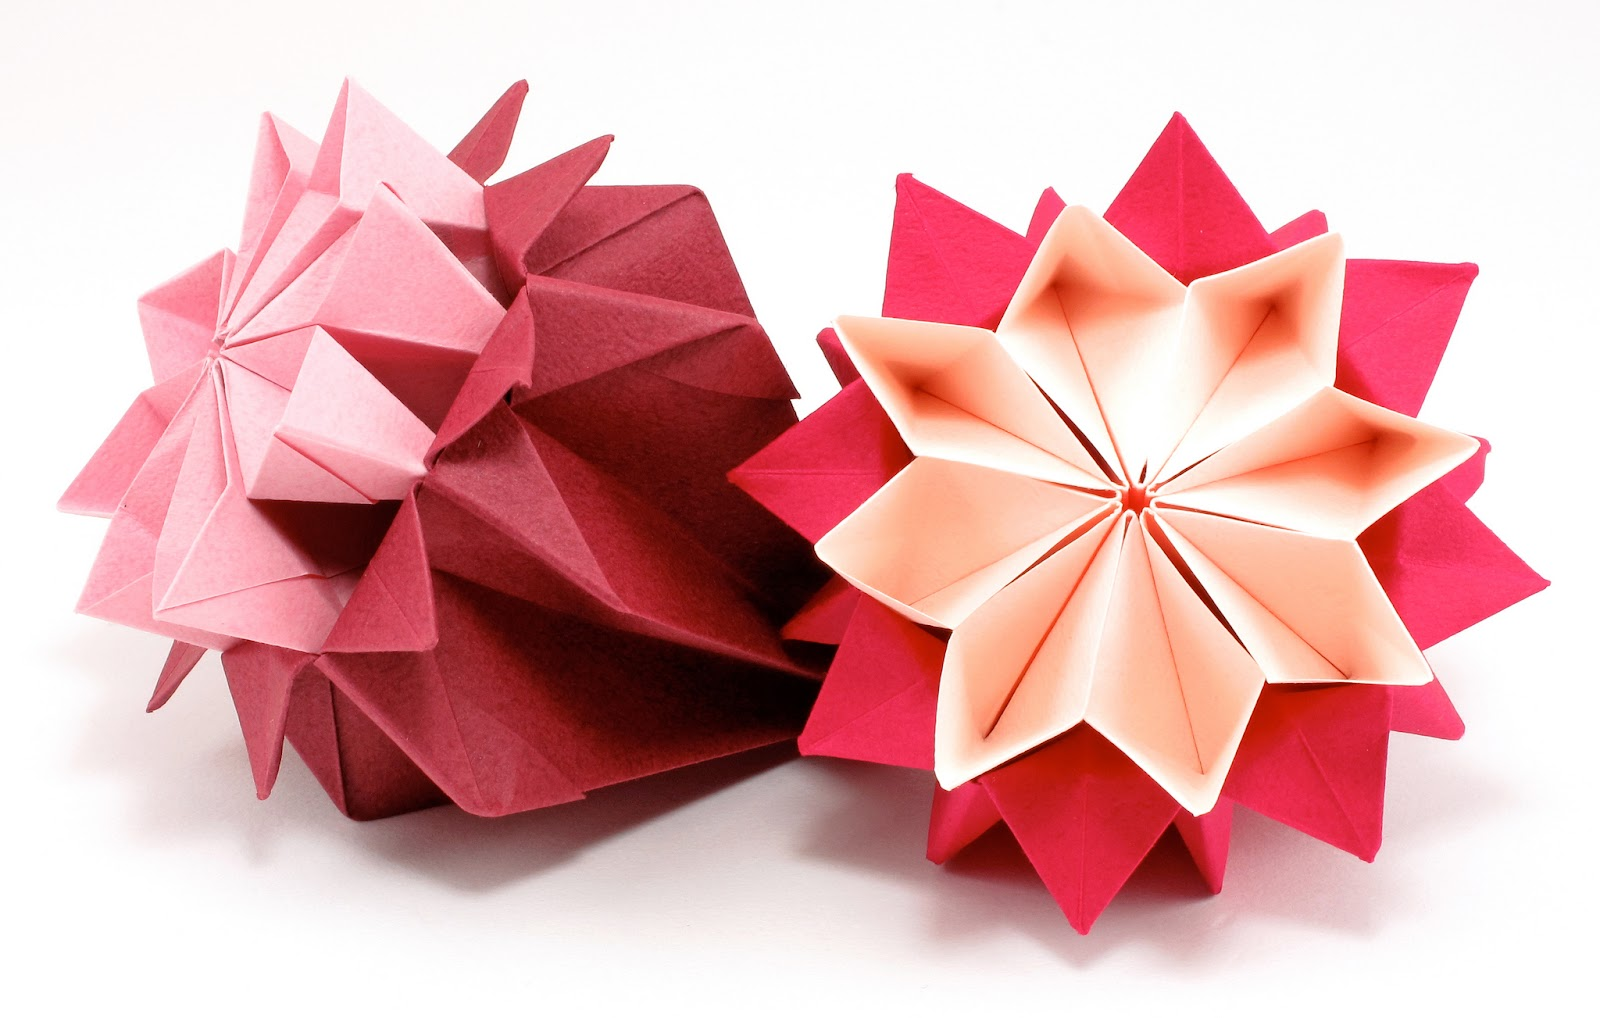 Bead origami origami interlude kusudama i used 15 by 15 cm tant paper for these flowers this paper comes in a rainbow pack and in packs of different hues and the red pack contains 12 different mightylinksfo Gallery